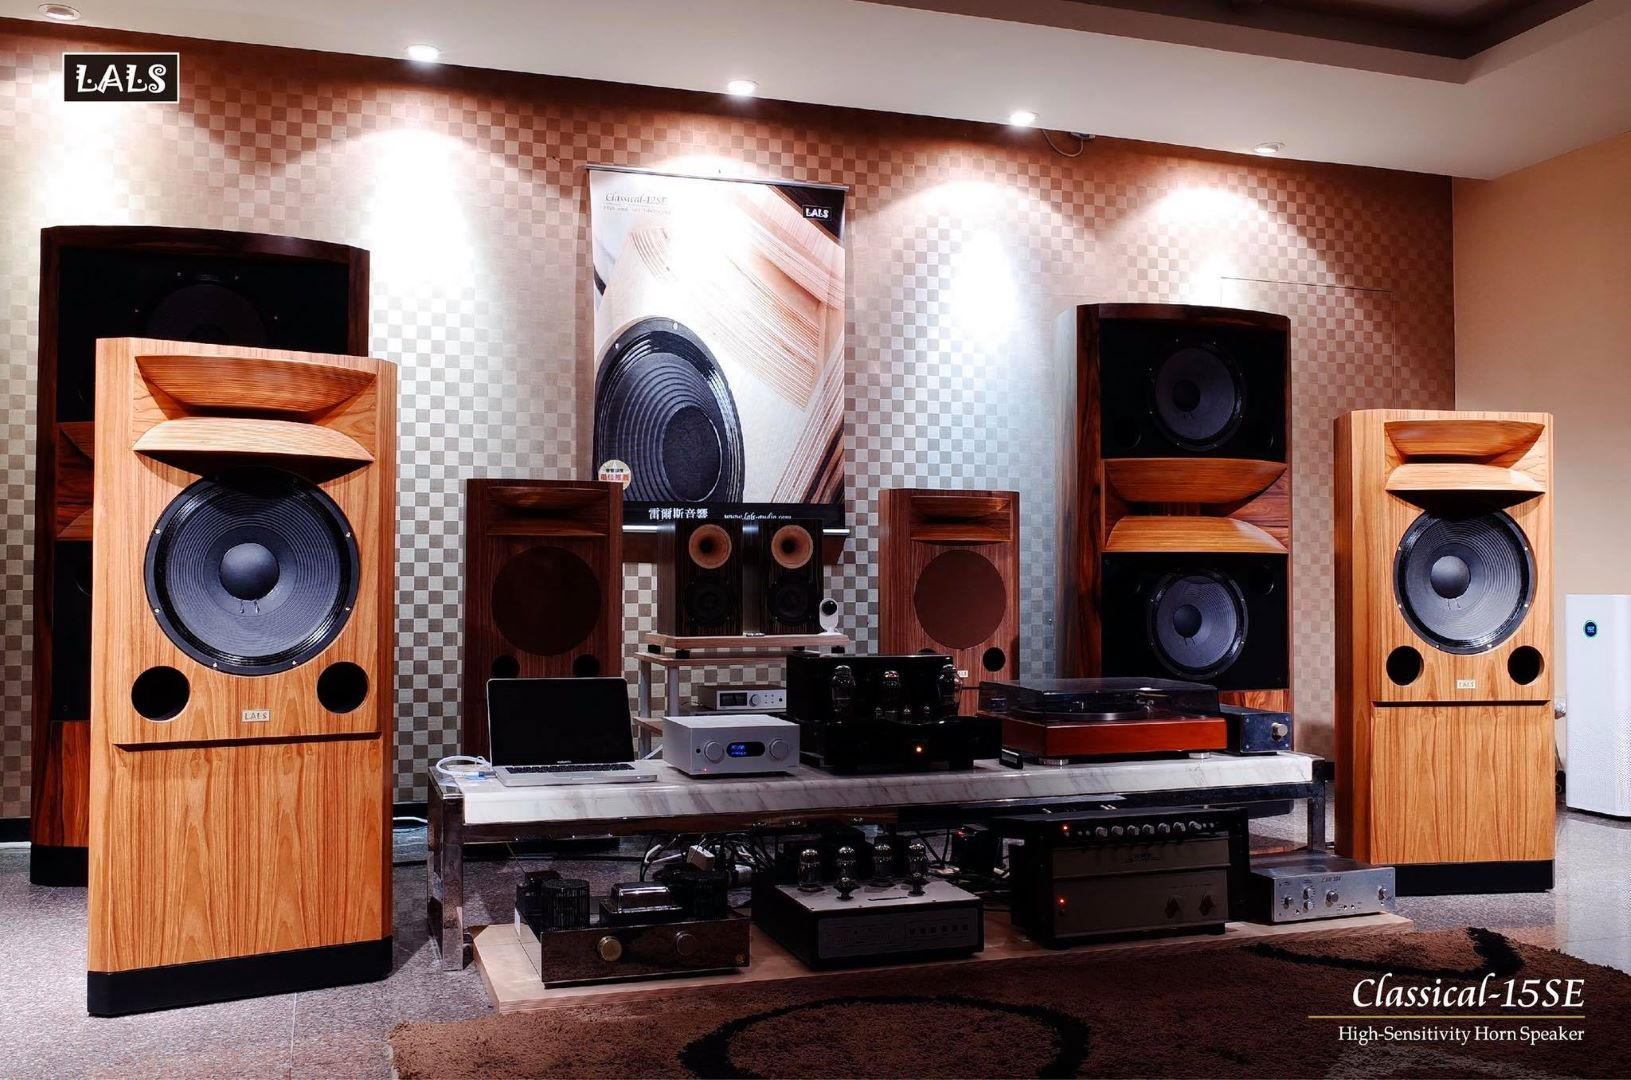 LALS-Classical-15SE-Floorstanding-Speakers